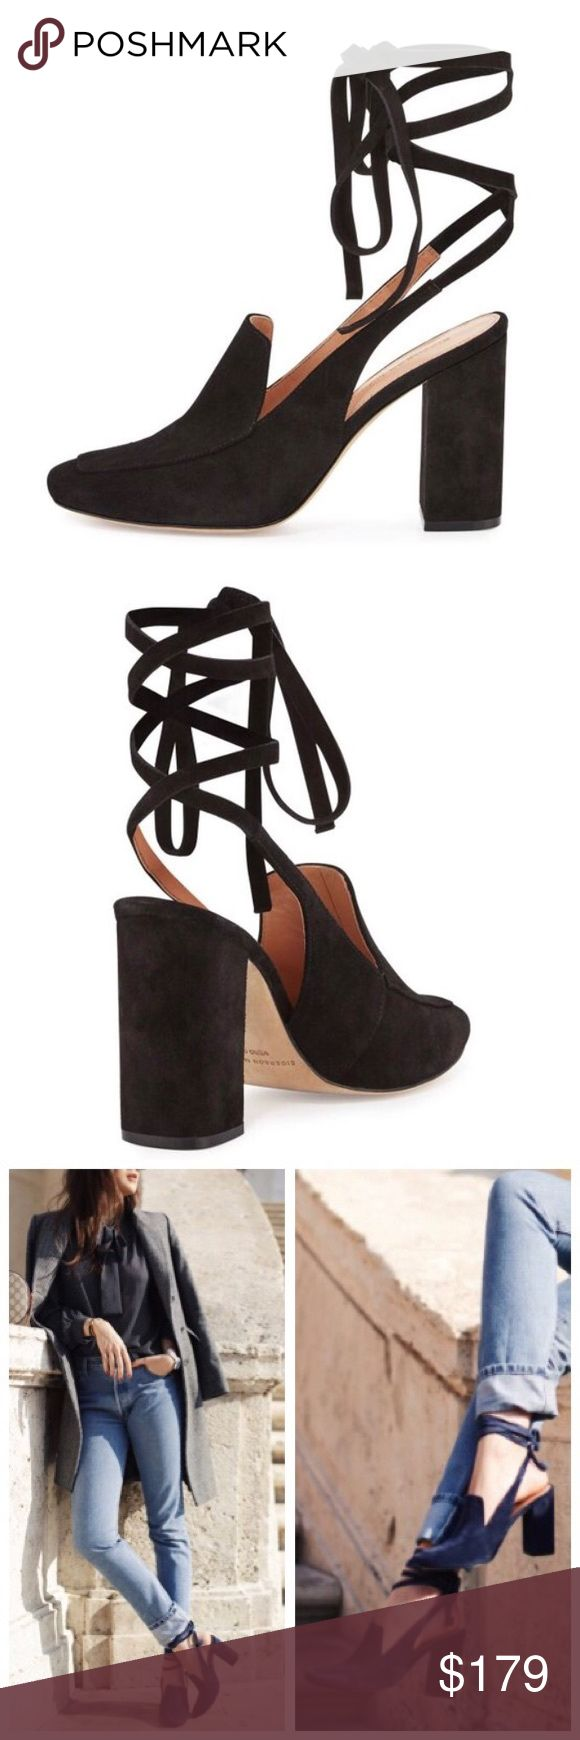 """Sigerson Morrison Black Posie Suede Lace Up Mule Sister to the Bena, the Posie is a backless suede mule detailed with a squared-off toe, a covered block heel and a wraparound lace-up closure. New without box.  3.8"""" covered block heel. Apron toe. Notched vamp. Self-tie ankle wrap. Smooth outsole. 💕Offers welcome on single items and on bundles. Take 20% off your bundles automatically at check out. Happy Poshing!💕 Sigerson Morrison Shoes Mules & Clogs"""